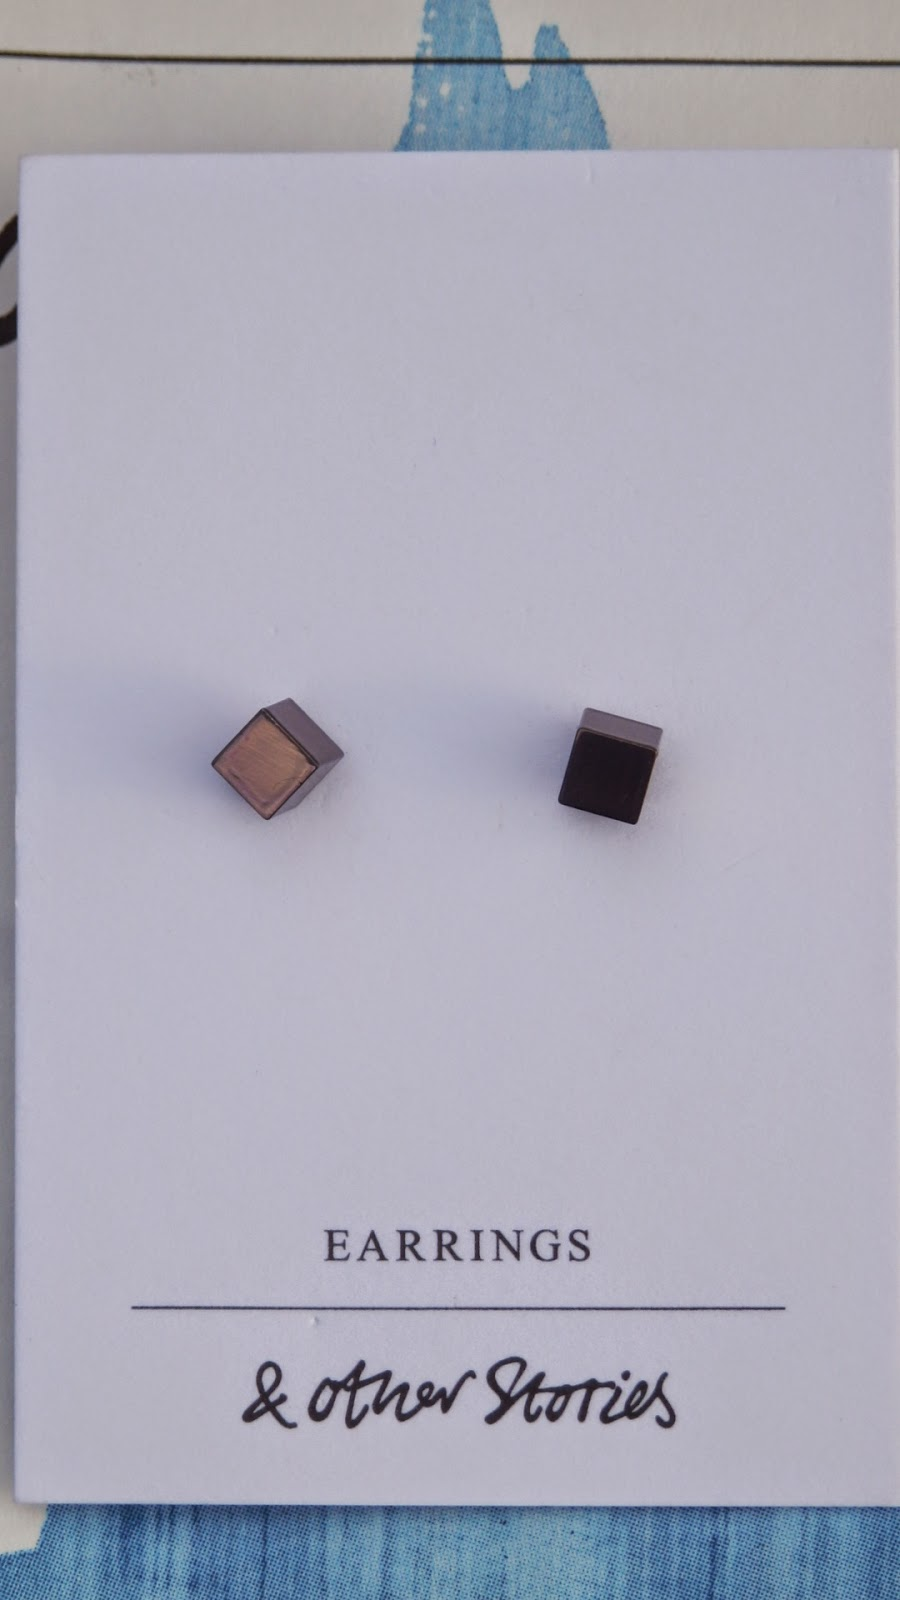 & Other Stories bronze/copper cube earrings